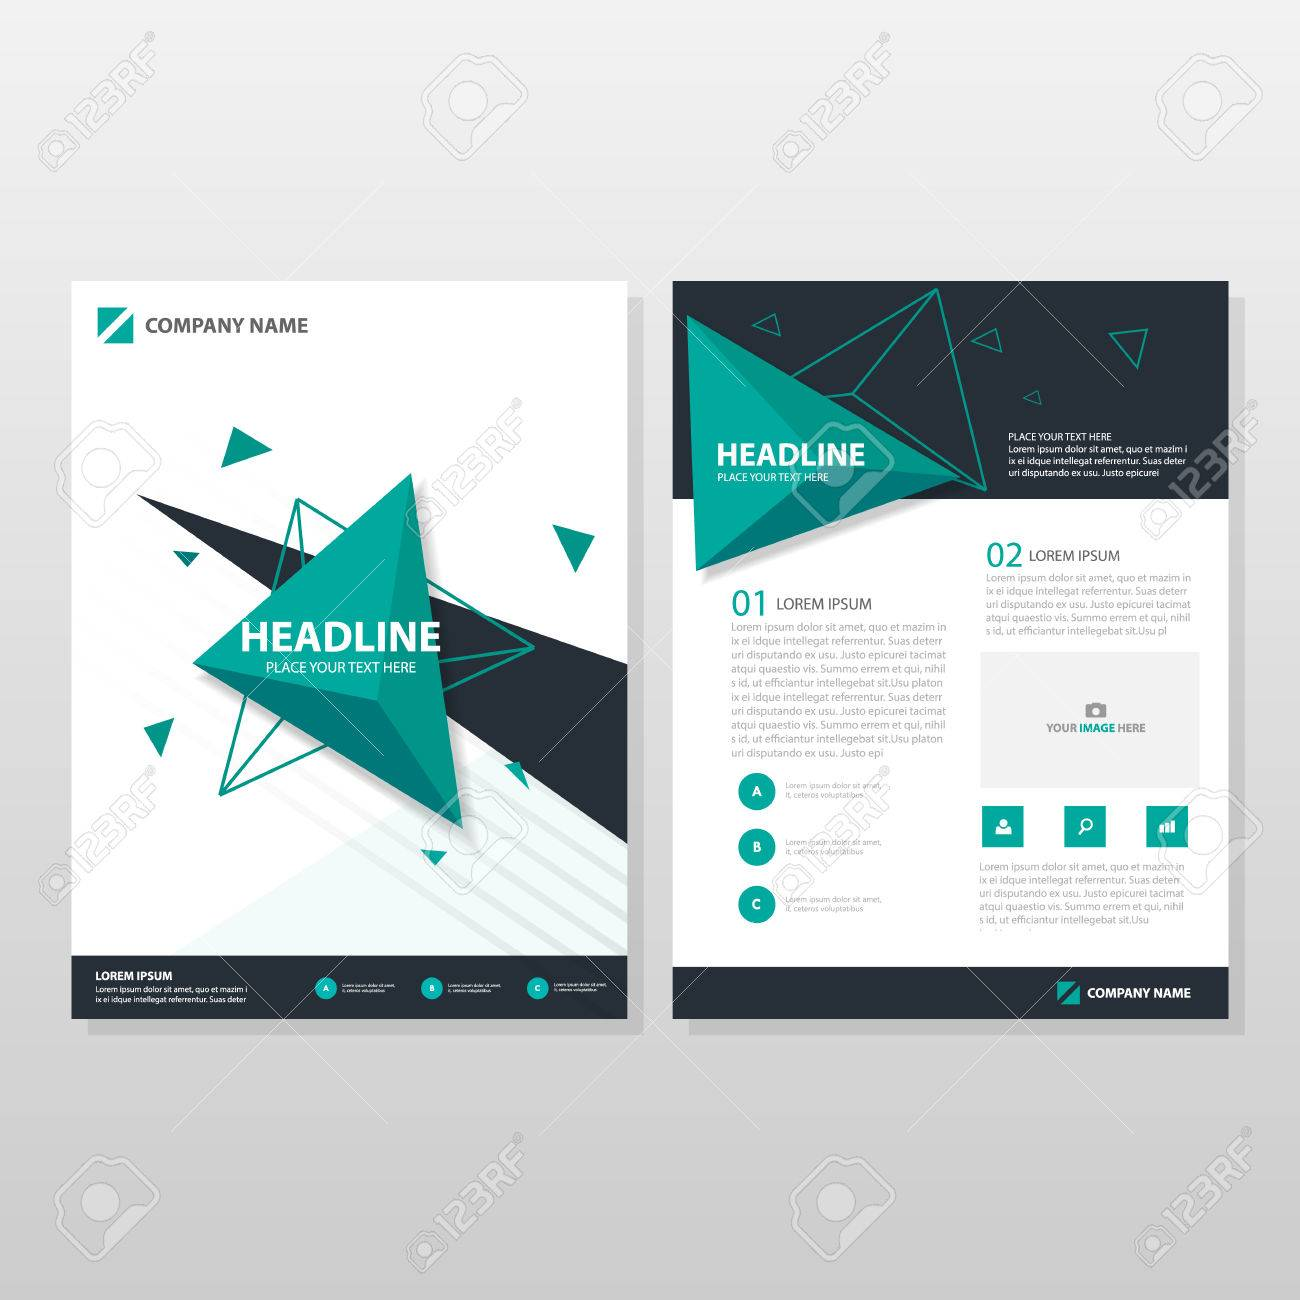 Green triangle Vector annual report Leaflet Brochure Flyer template design, book cover layout design, abstract business presentation template, a4 size design - 58294014